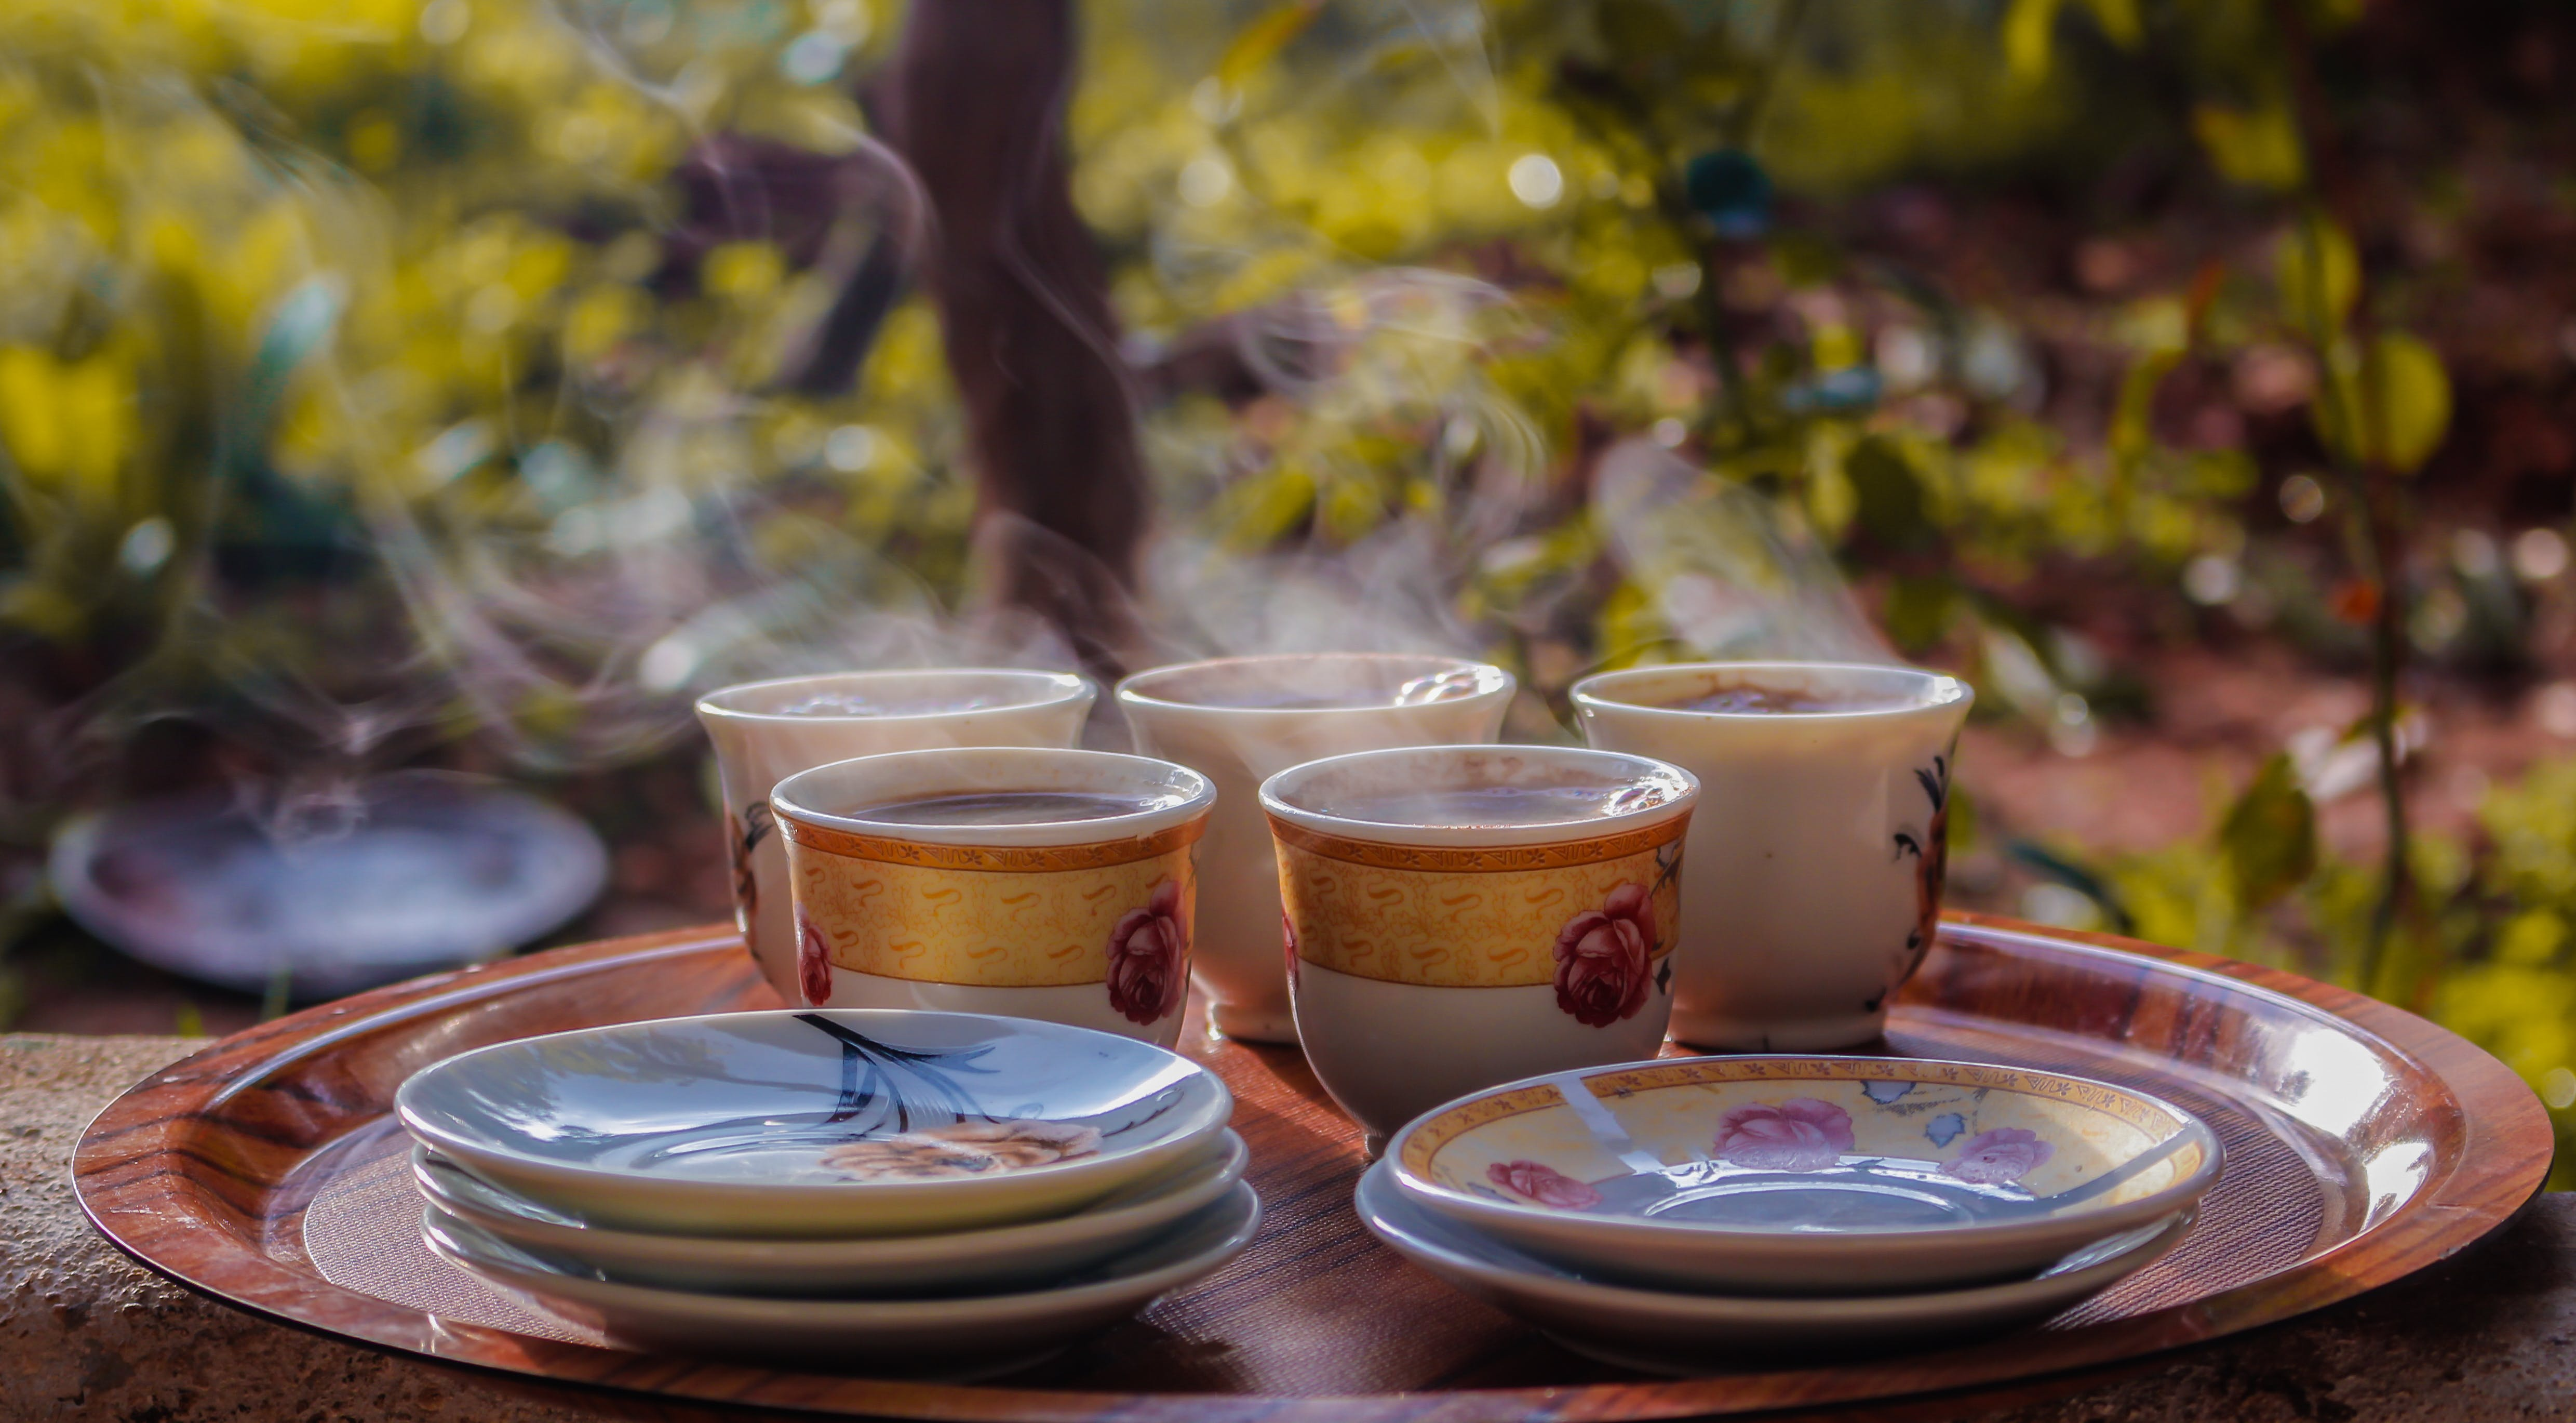 Cups and Saucers on Round Brown Tray